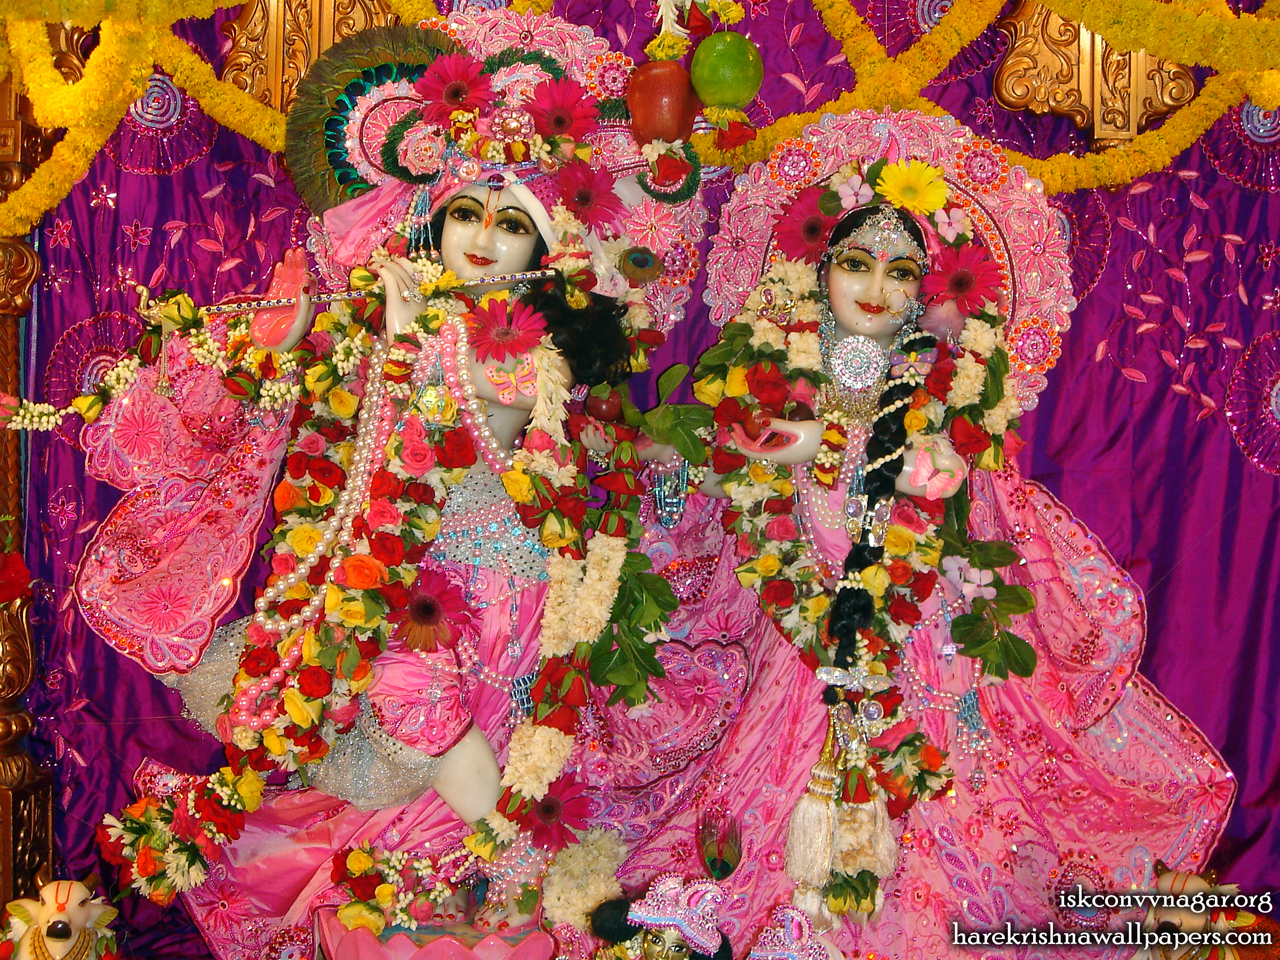 Sri Sri Radha Giridhari Wallpaper (002) Size 1280x960 Download